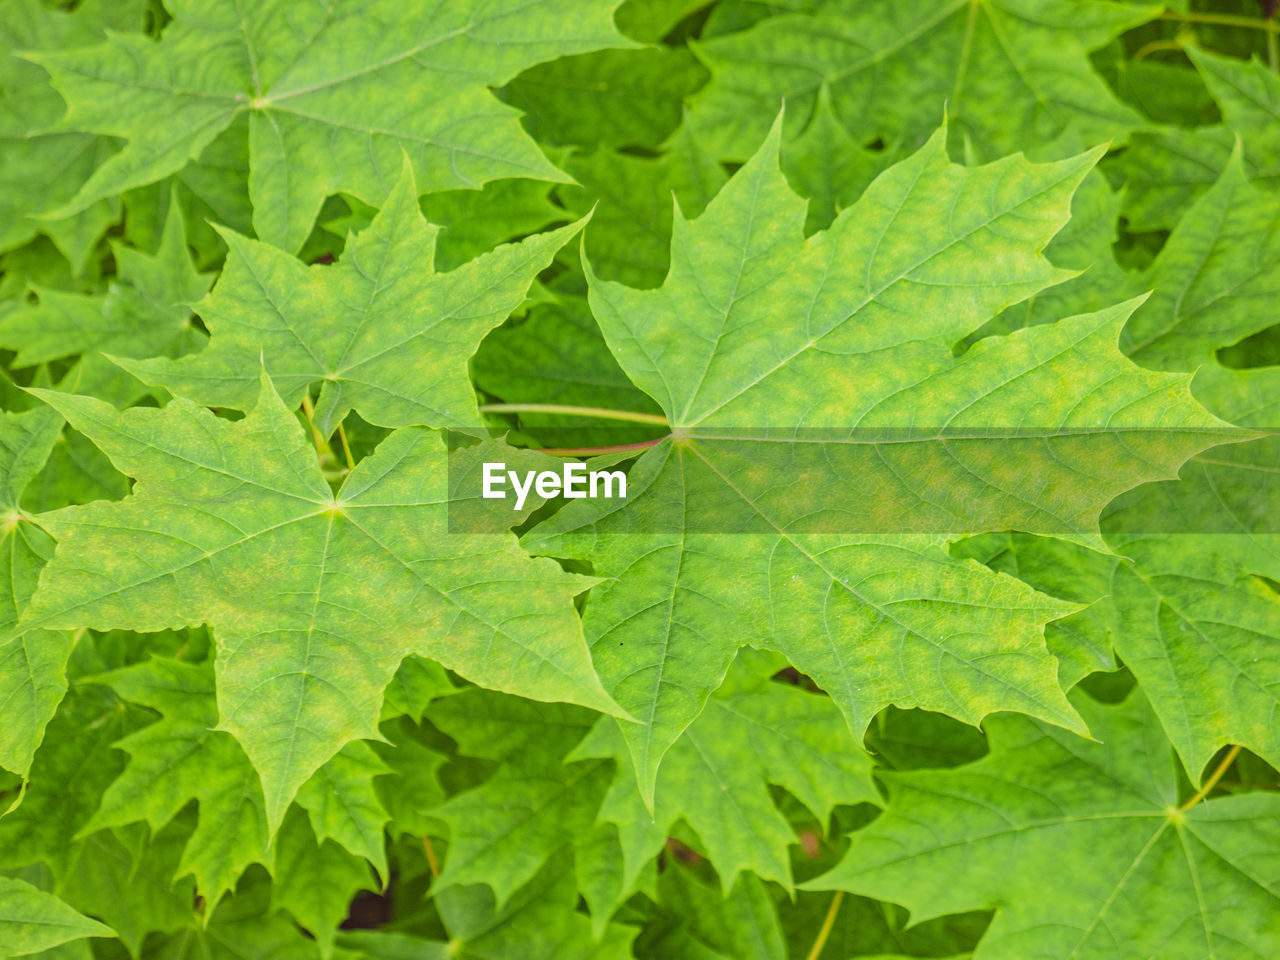 plant part, leaf, green color, plant, backgrounds, nature, close-up, growth, no people, full frame, day, beauty in nature, leaf vein, outdoors, leaves, freshness, high angle view, botany, vulnerability, fragility